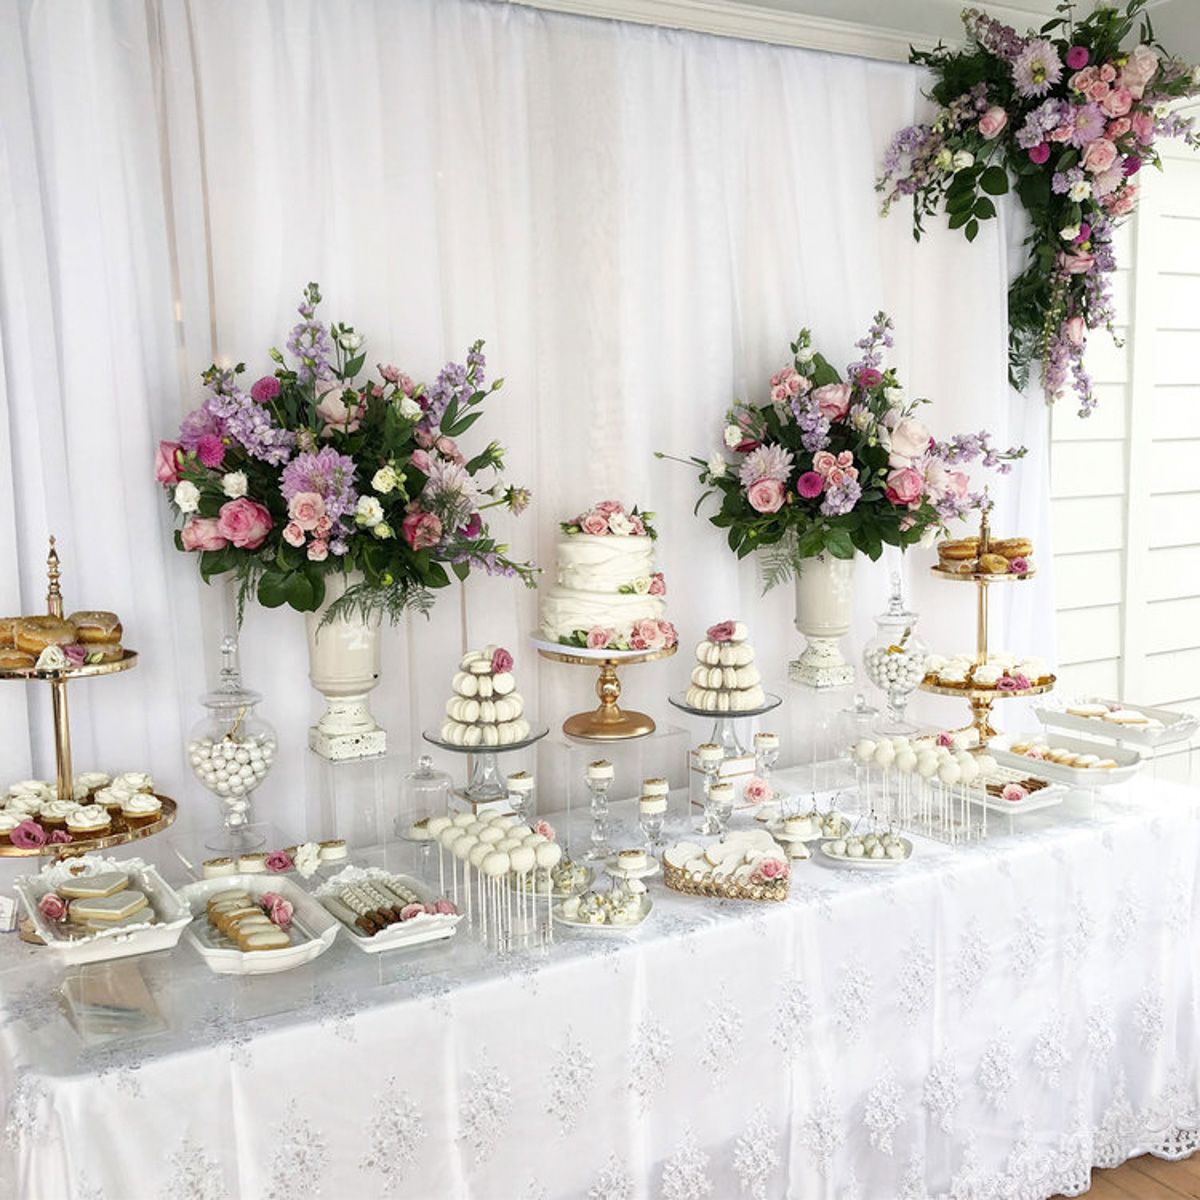 scintillate-events-vineyard-bride-swish-list-vendor-spotlight-sweets-table-desserts-niagara-toronto-wedding006.jpg